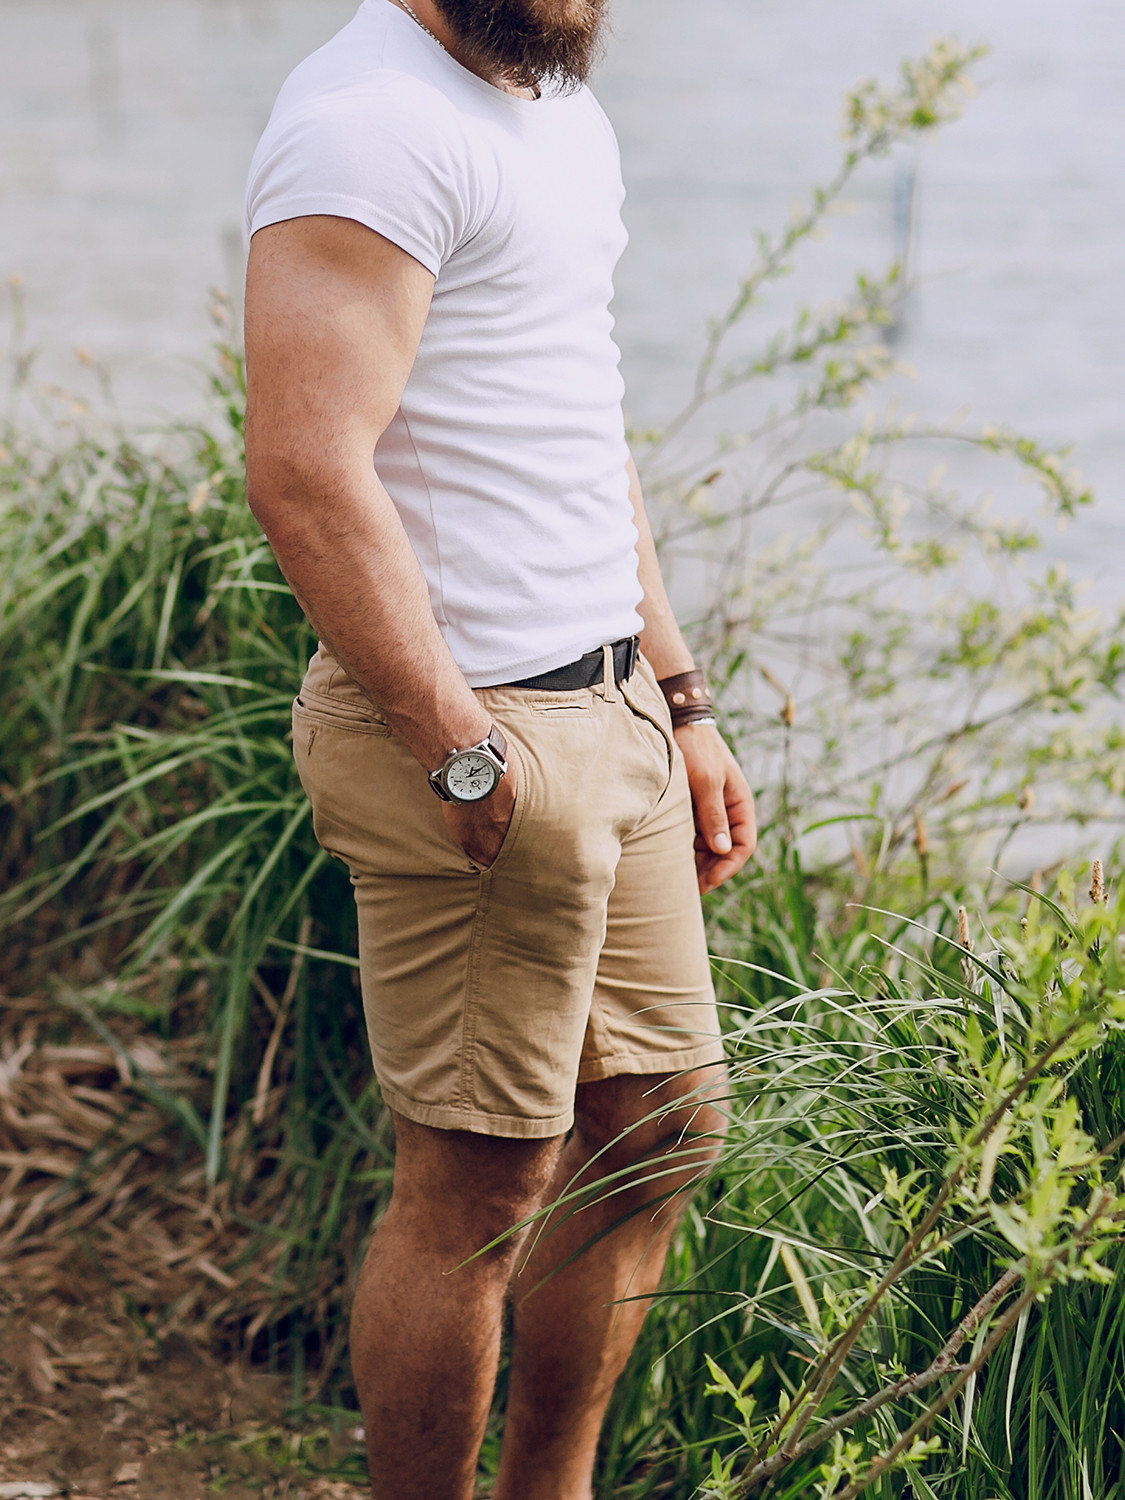 Men's outfit idea for 2021 with white crew neck t-shirt, neutral cotton shorts, grey espadrilles. Suitable for summer.